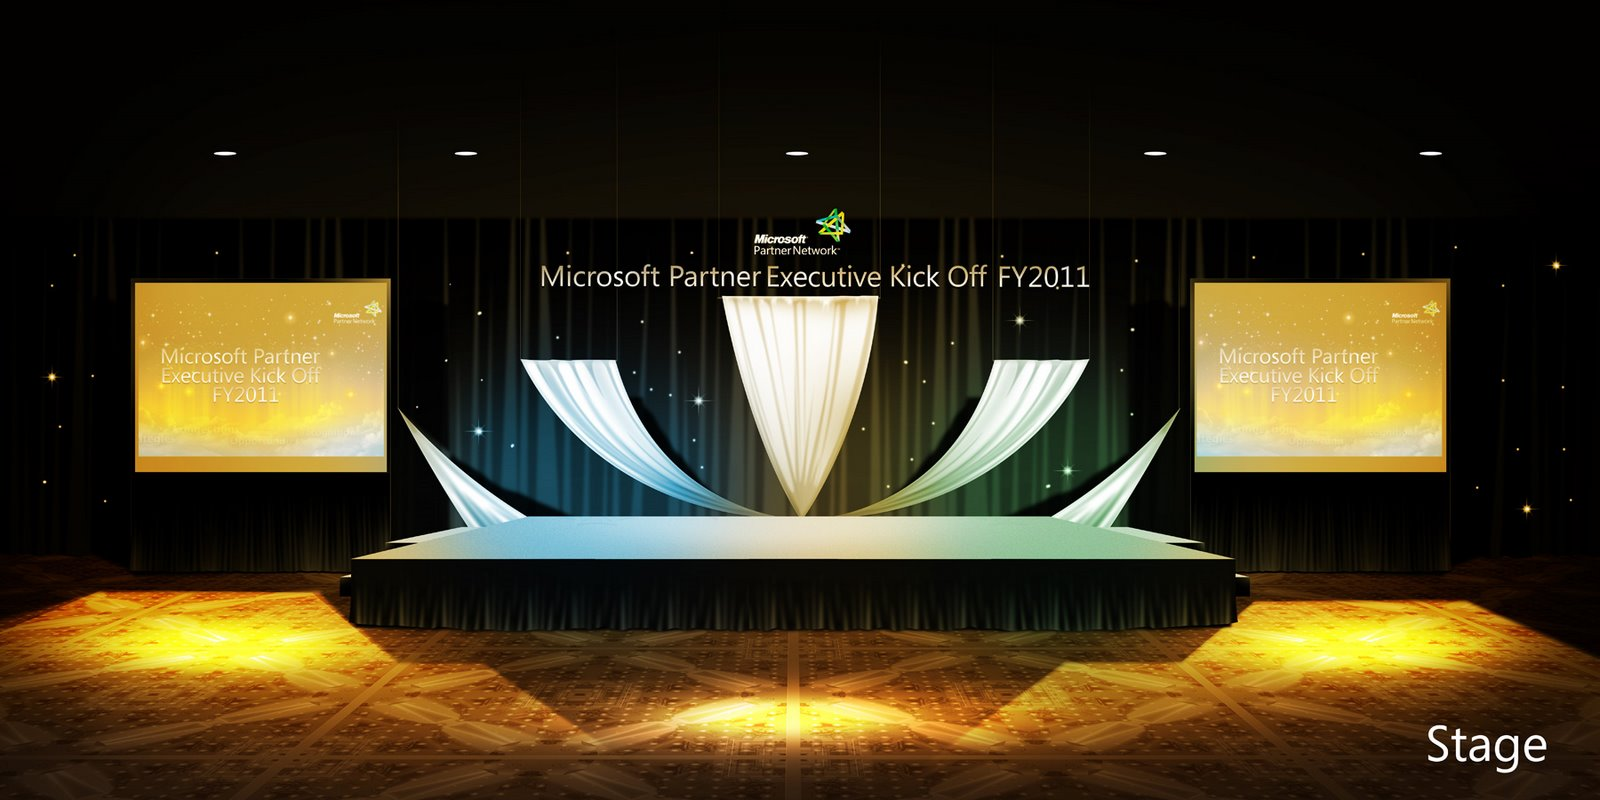 microsoft stage design neutralart stage design pinterest ideas stage design and design - Stage Design Ideas